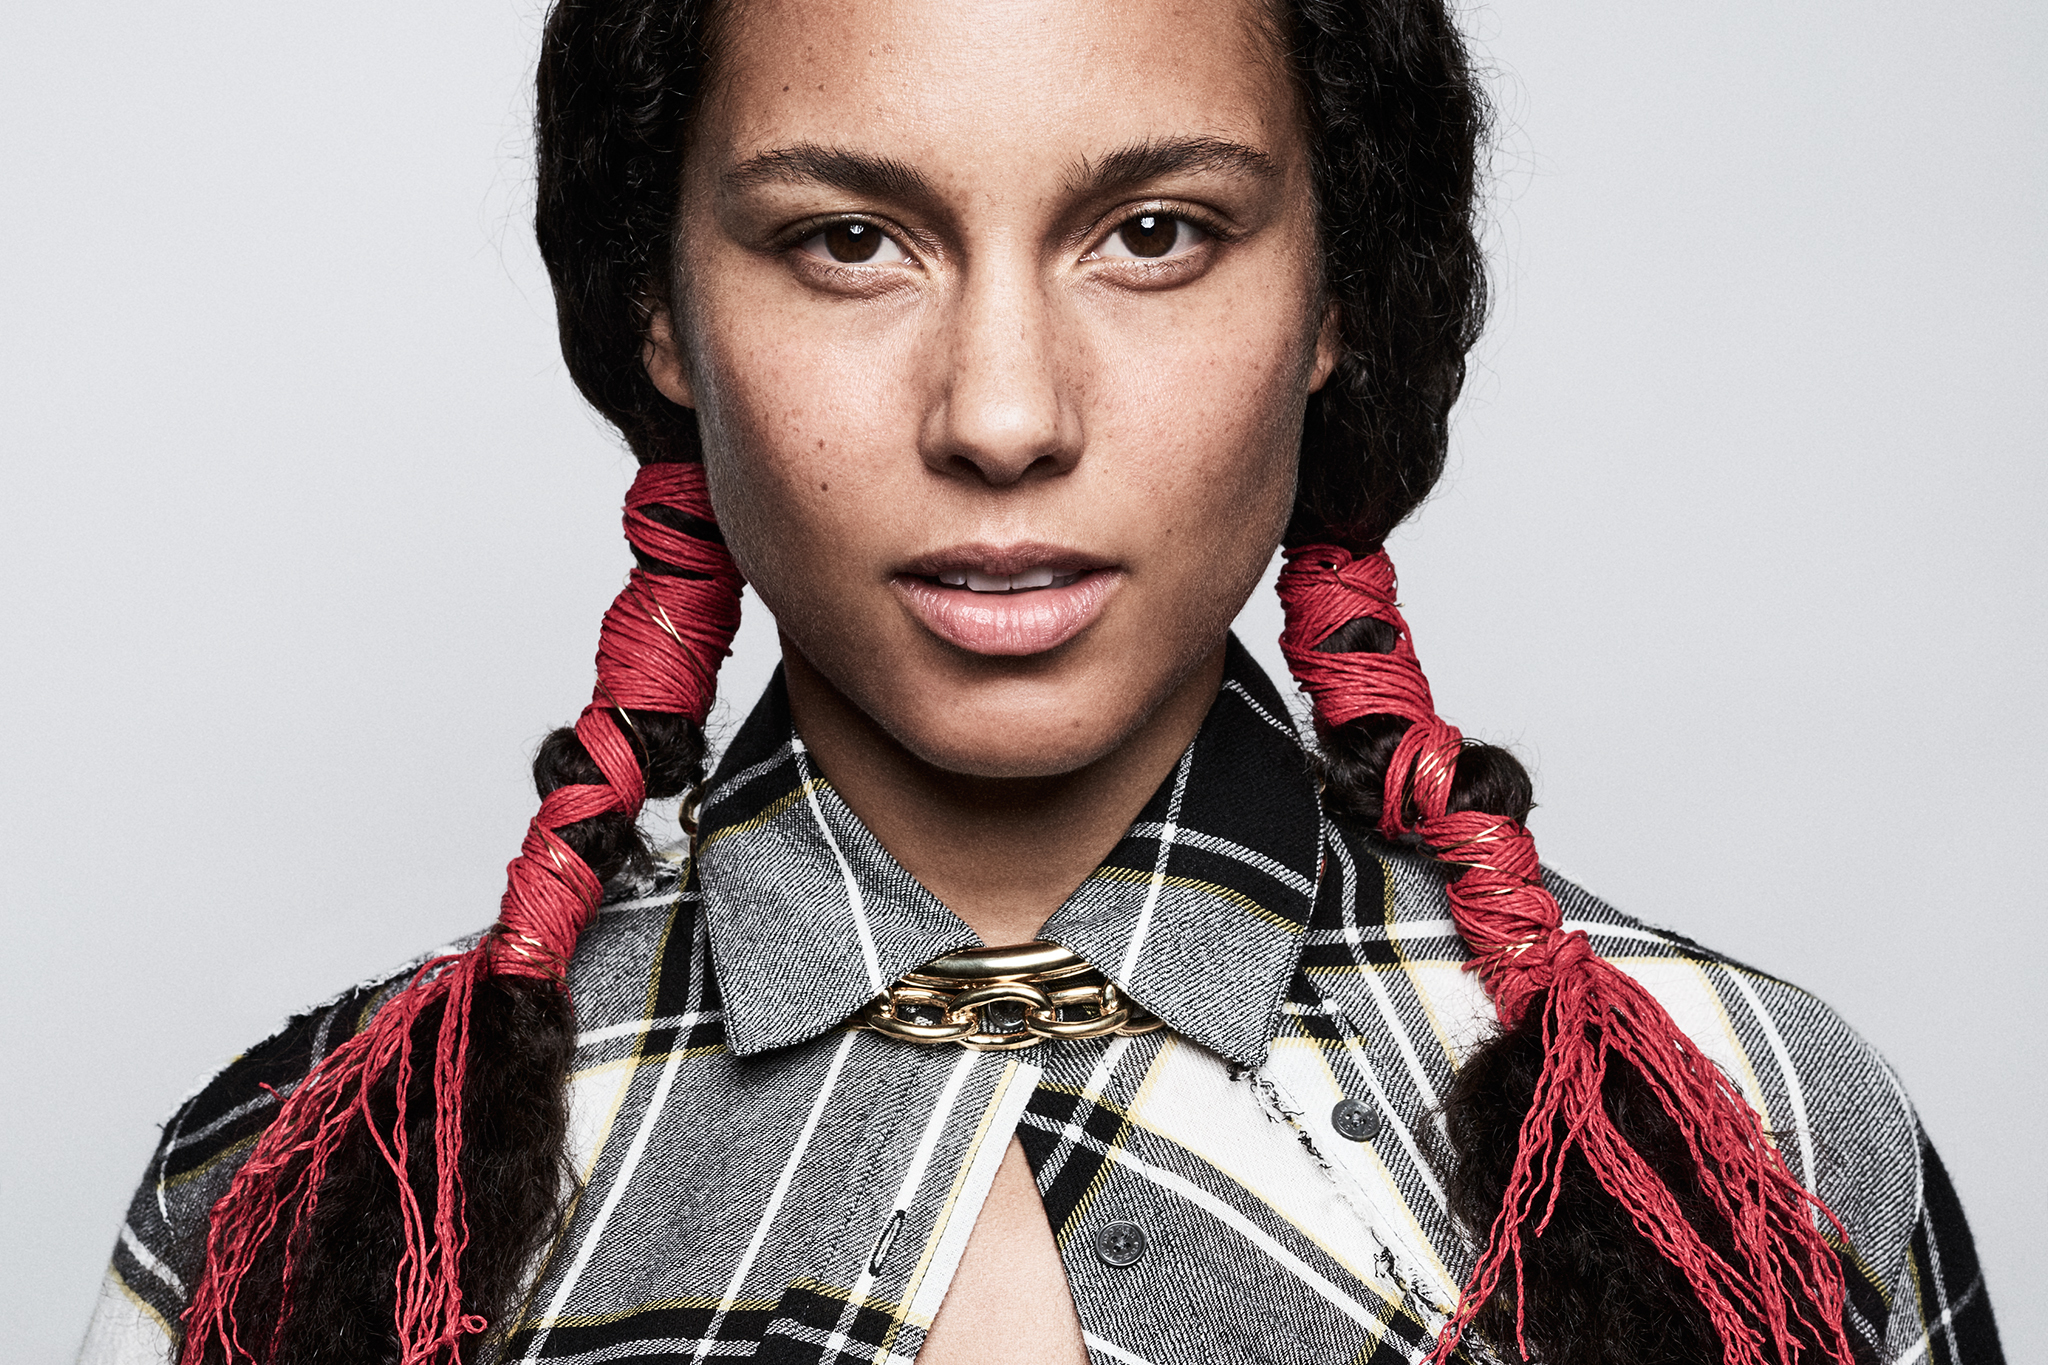 Alicia Keys on her new album, surprise NYC show and more